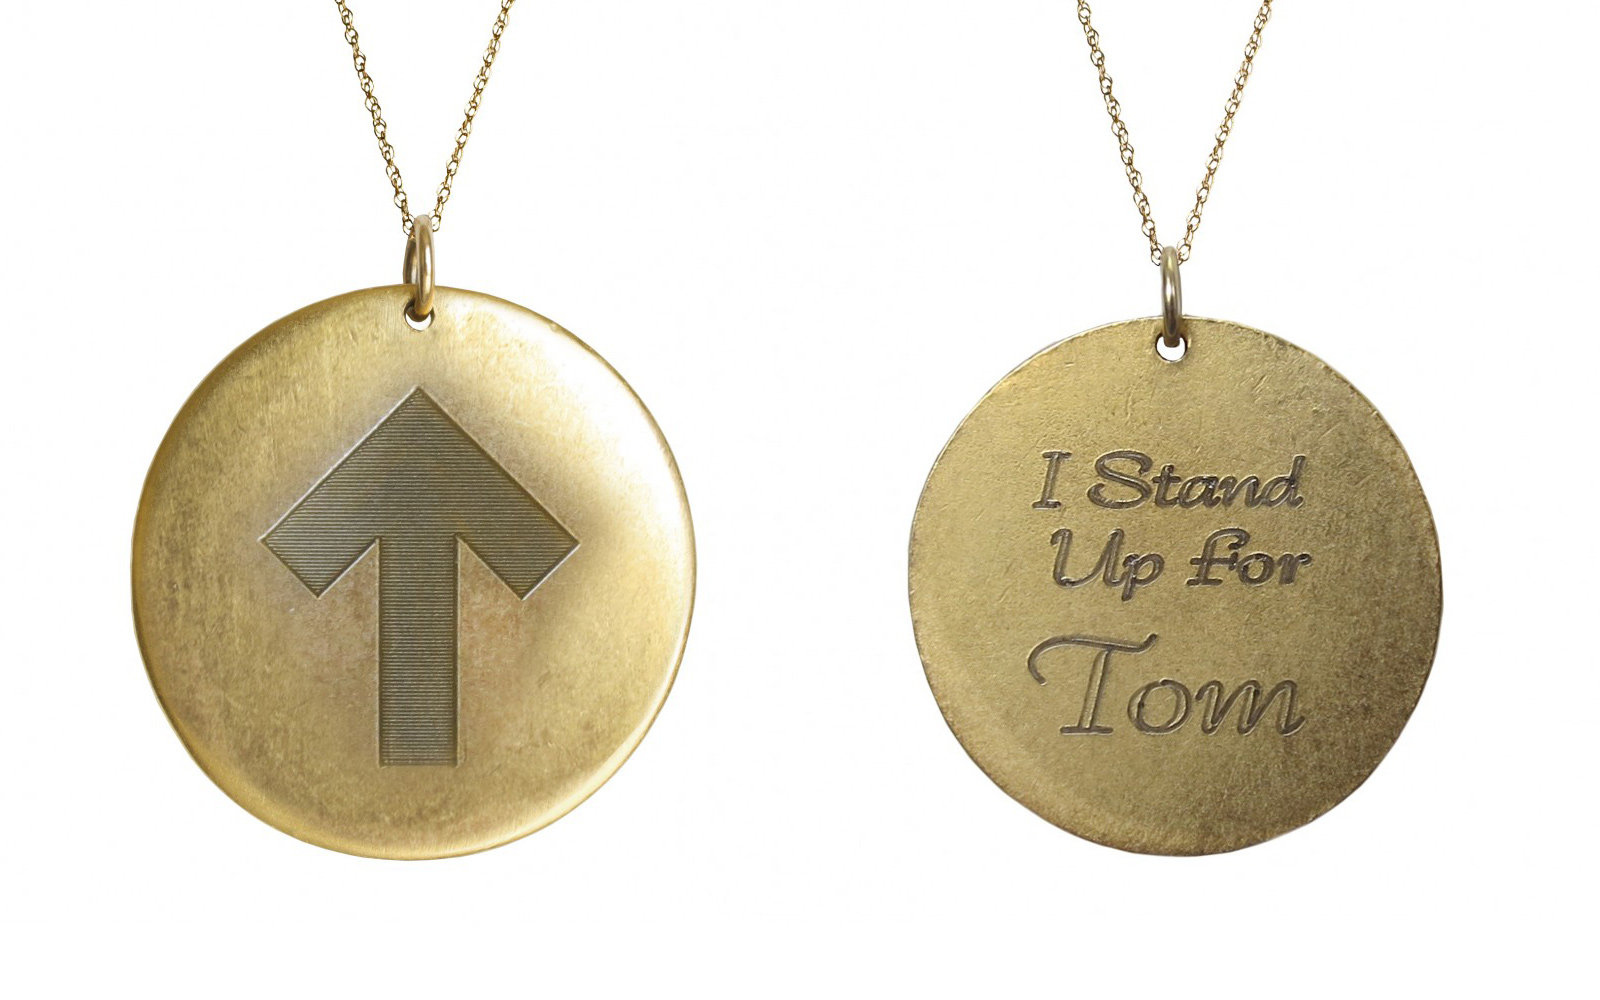 Golden Thread Stand Up Strong Personalized Pendant Necklace